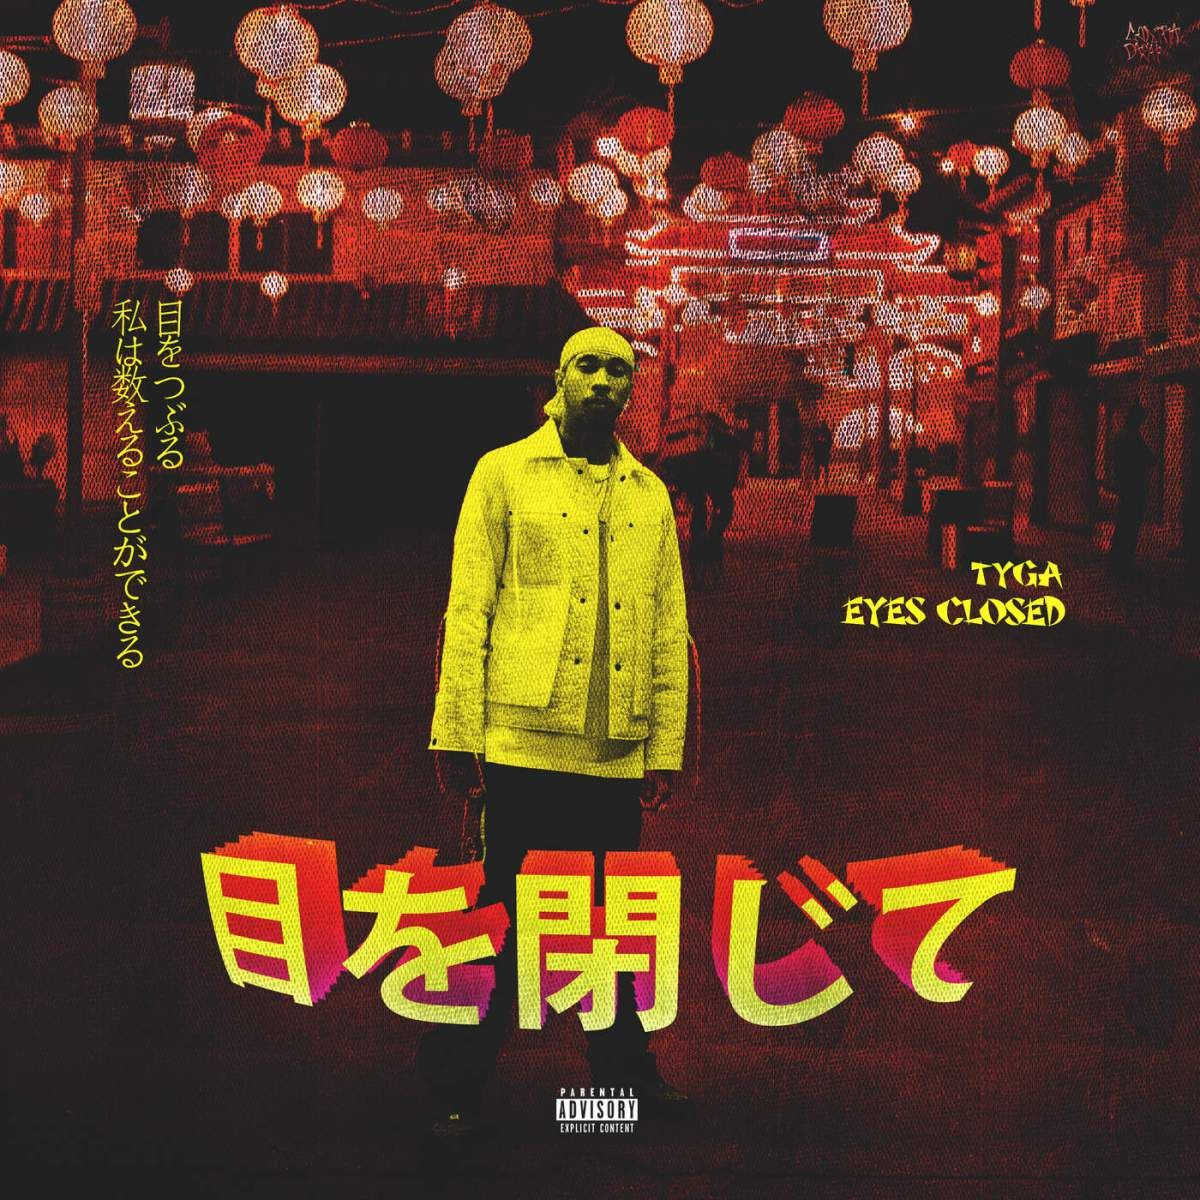 Released may 05 2017 genres electronic dance - Tyga Eyes Closed Released On May 5th 2017 Produced By Tyga Alexander Edwards